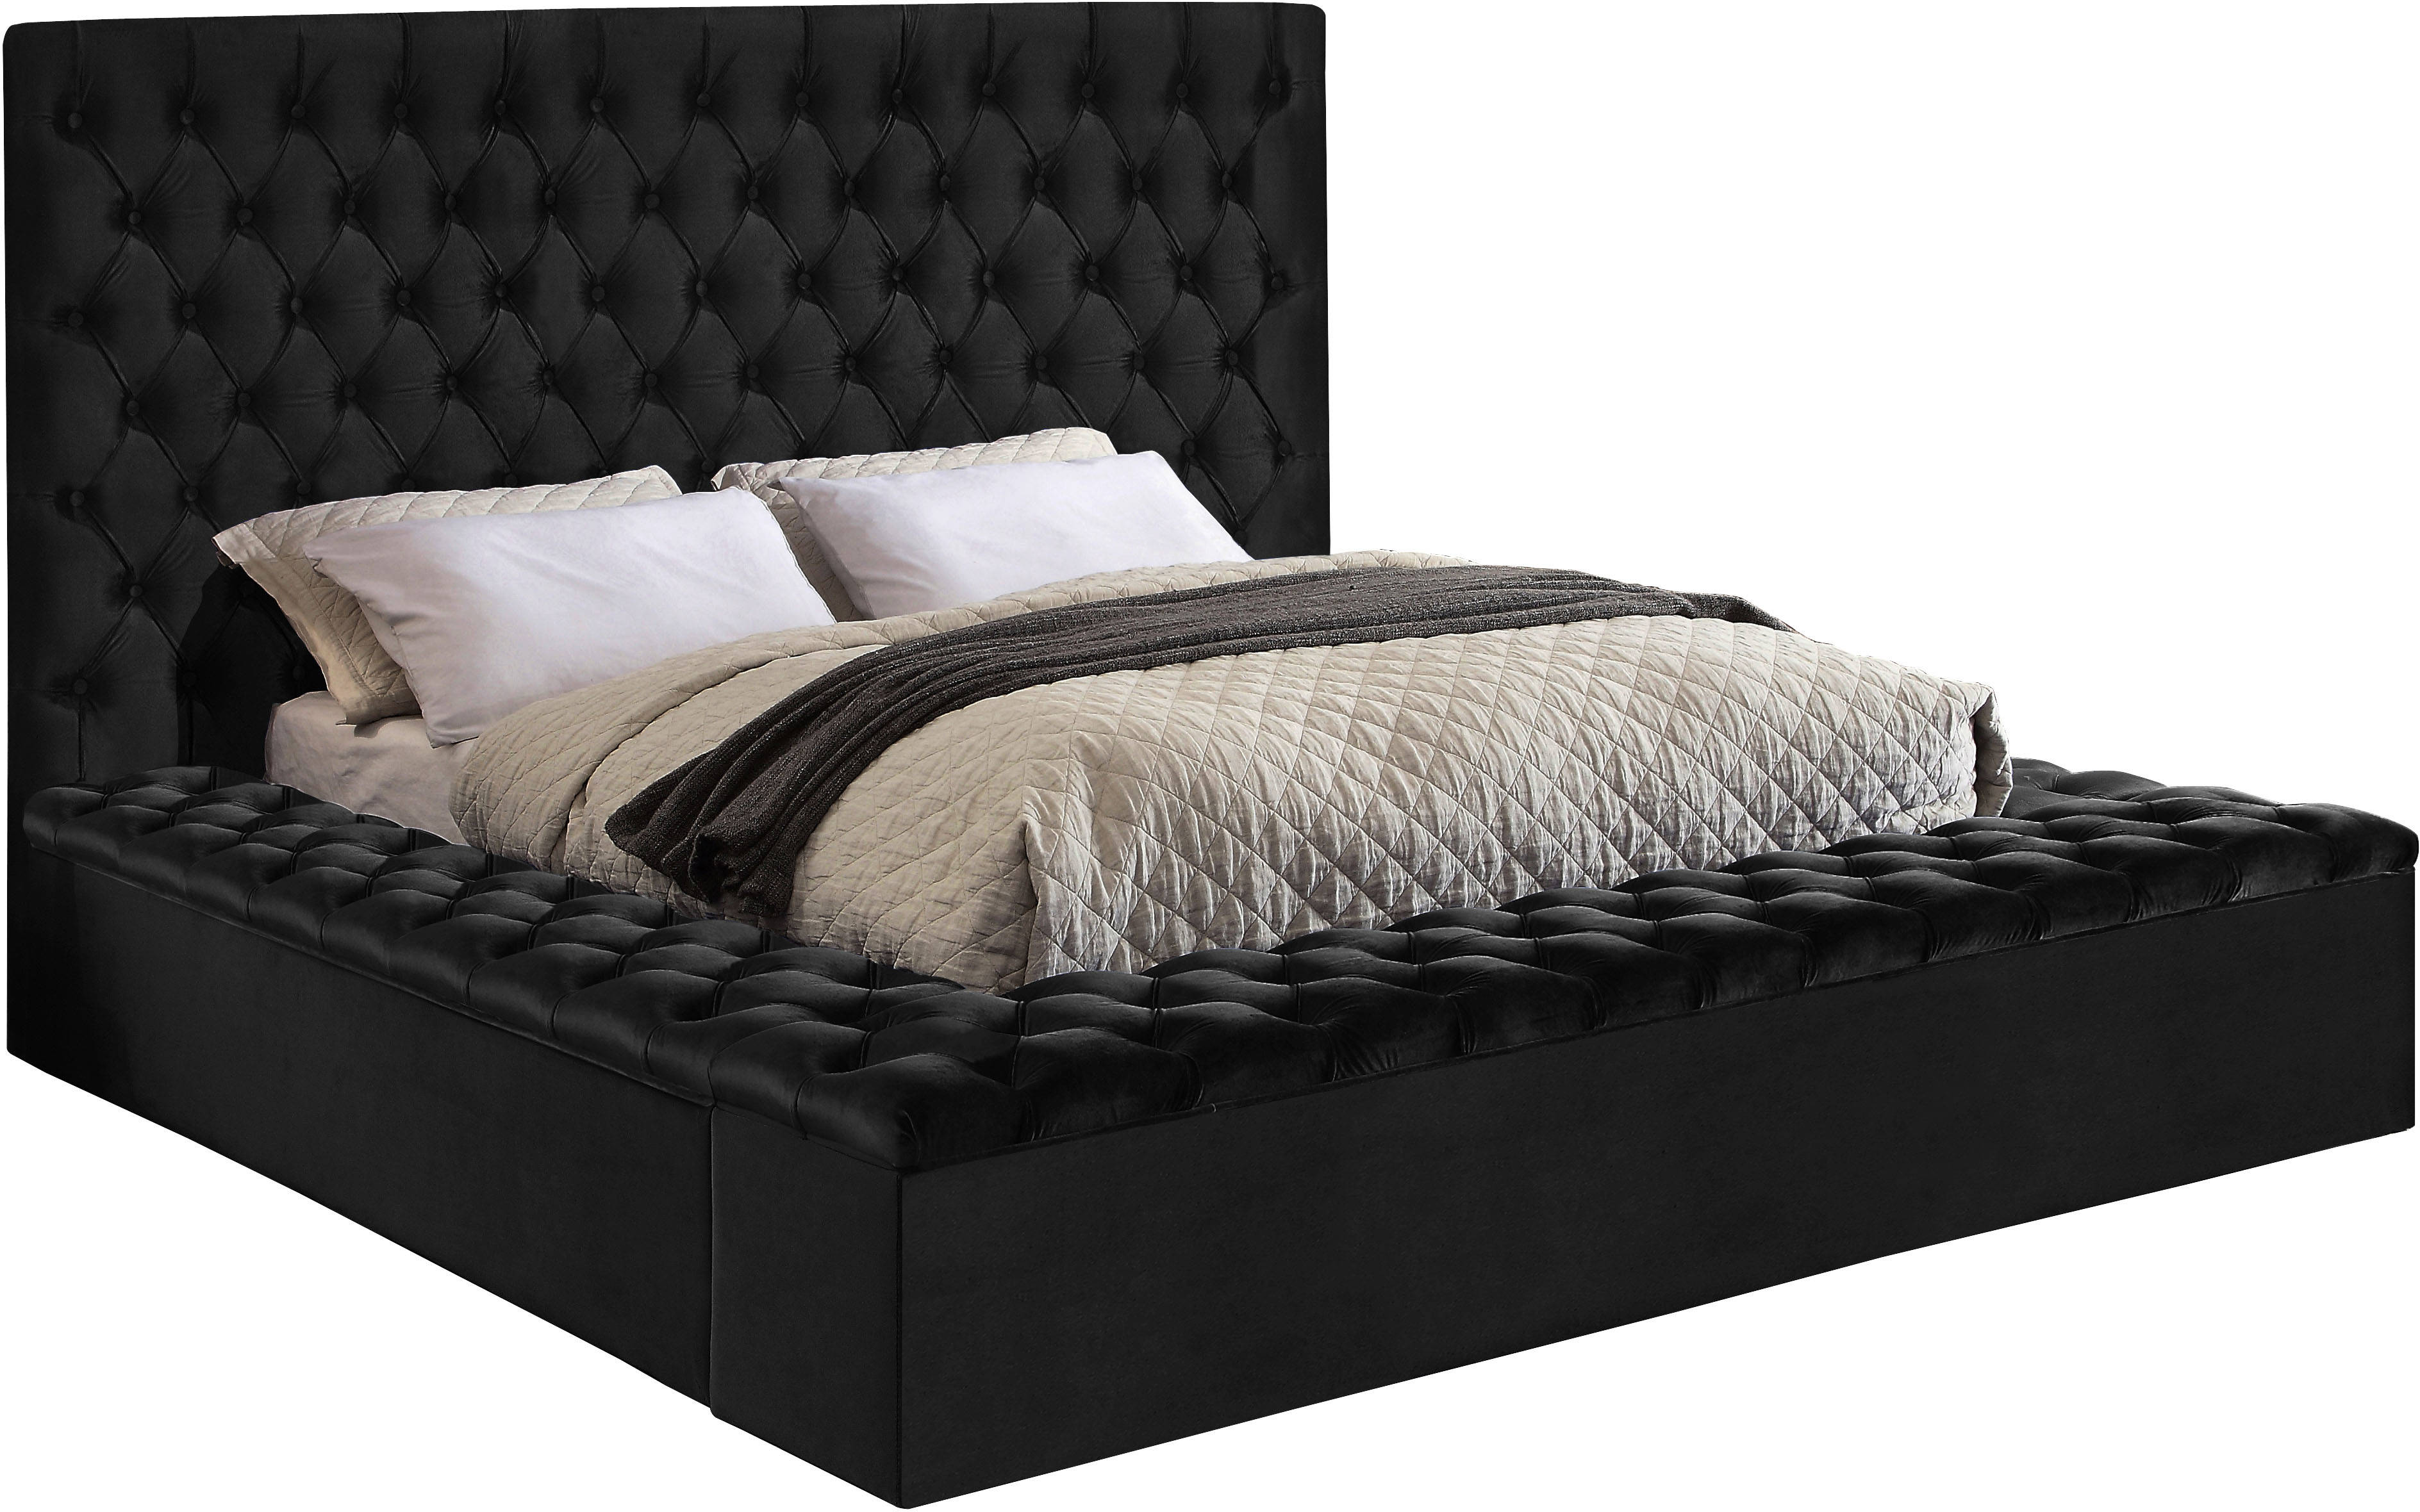 Delicieux Meridian Furniture Bliss Black Queen Bed Click To Enlarge ...